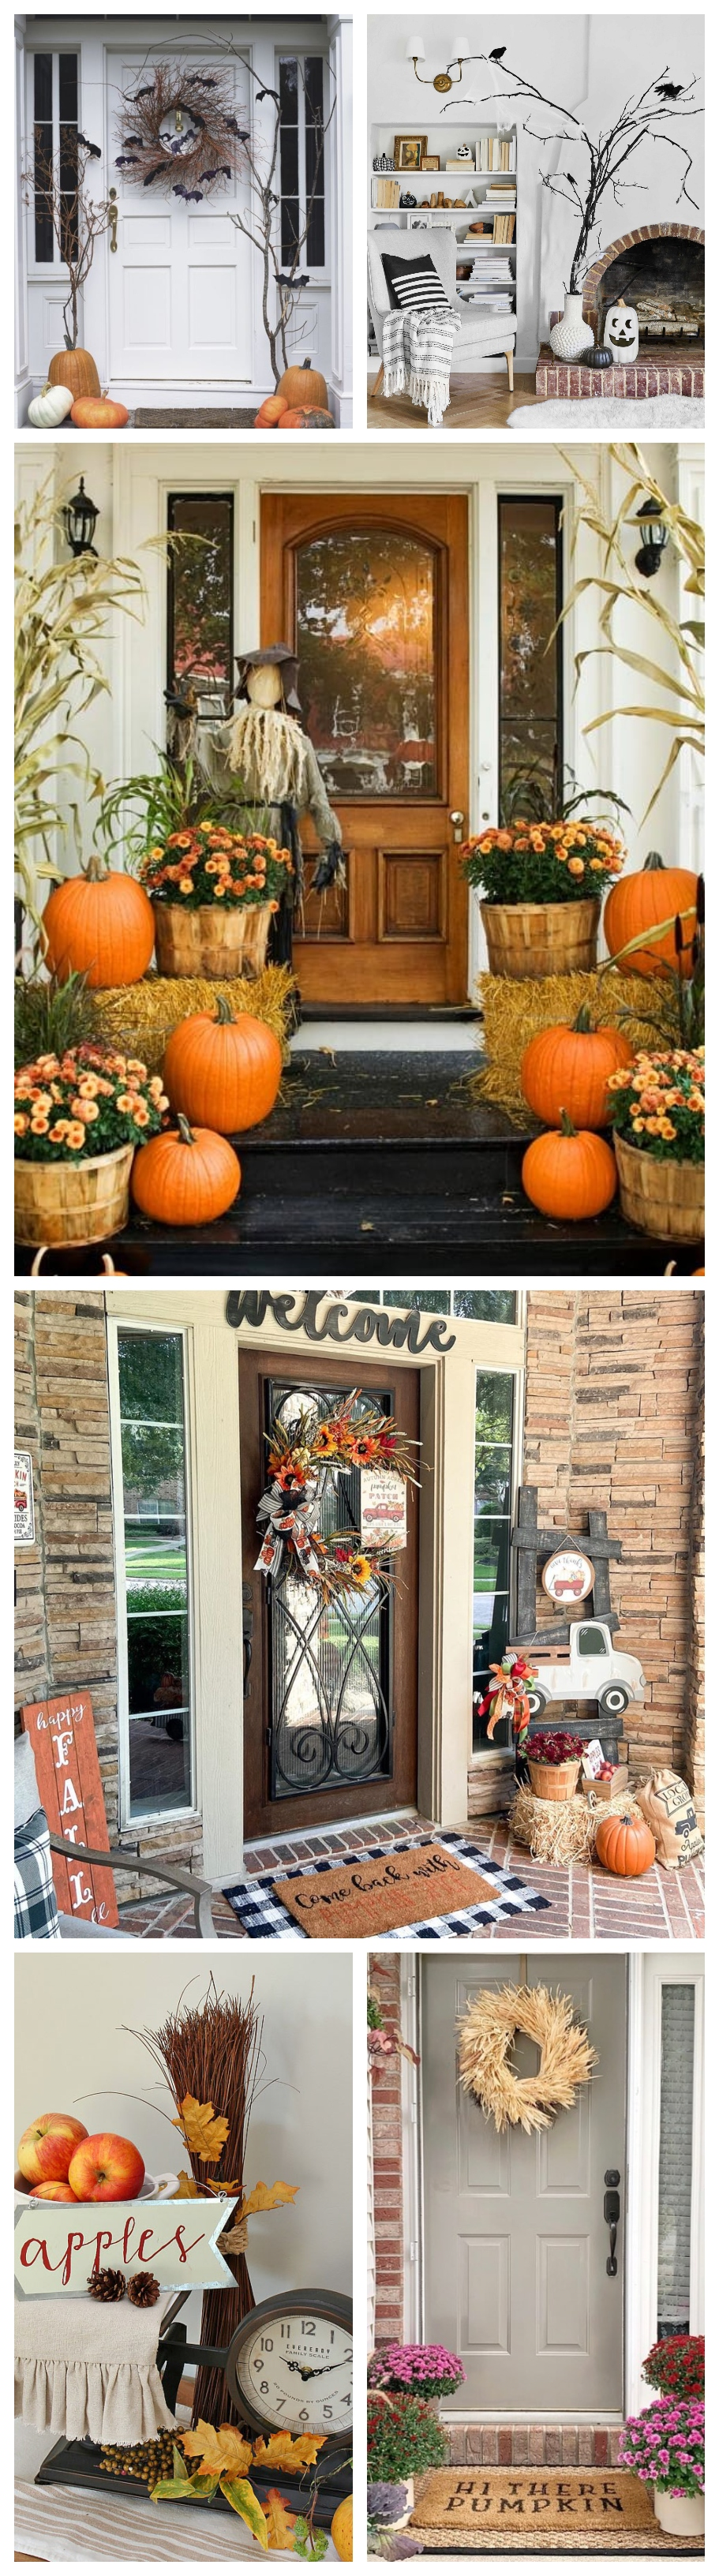 27 Easy DIY Halloween Decoration Ideas That You Can Do At Home